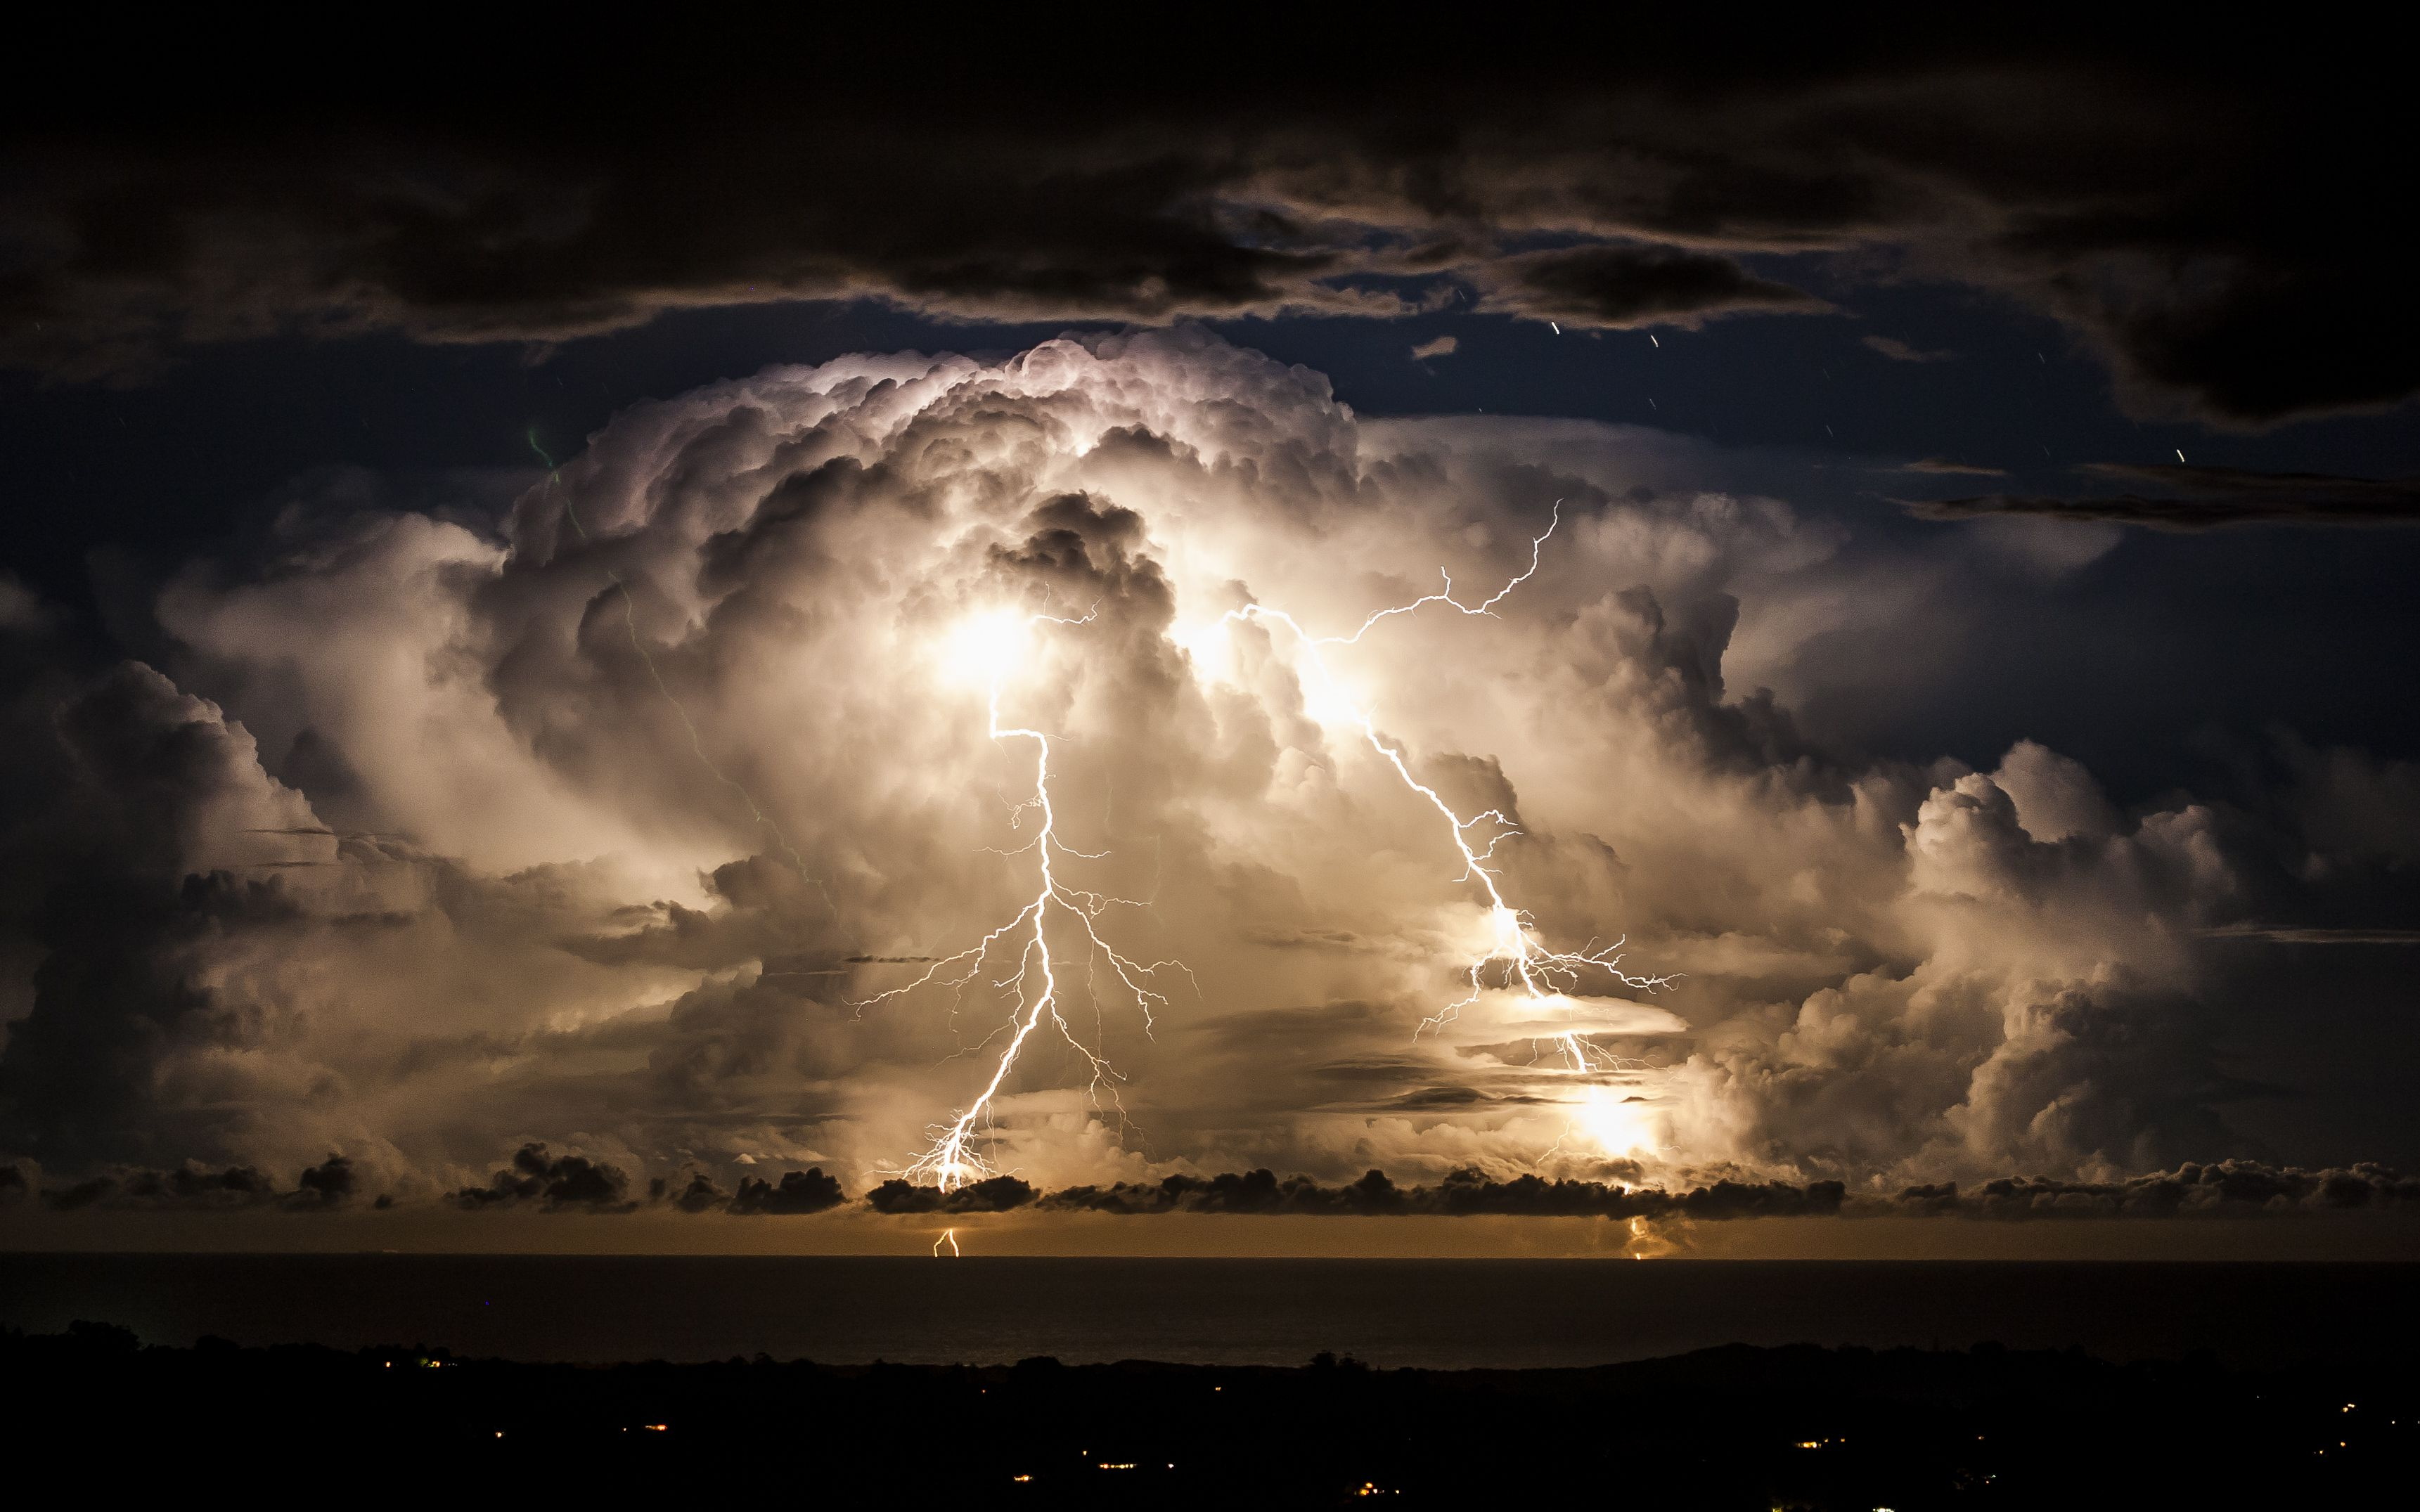 Comparing Thunderstorms Tornadoes And Hurricanes